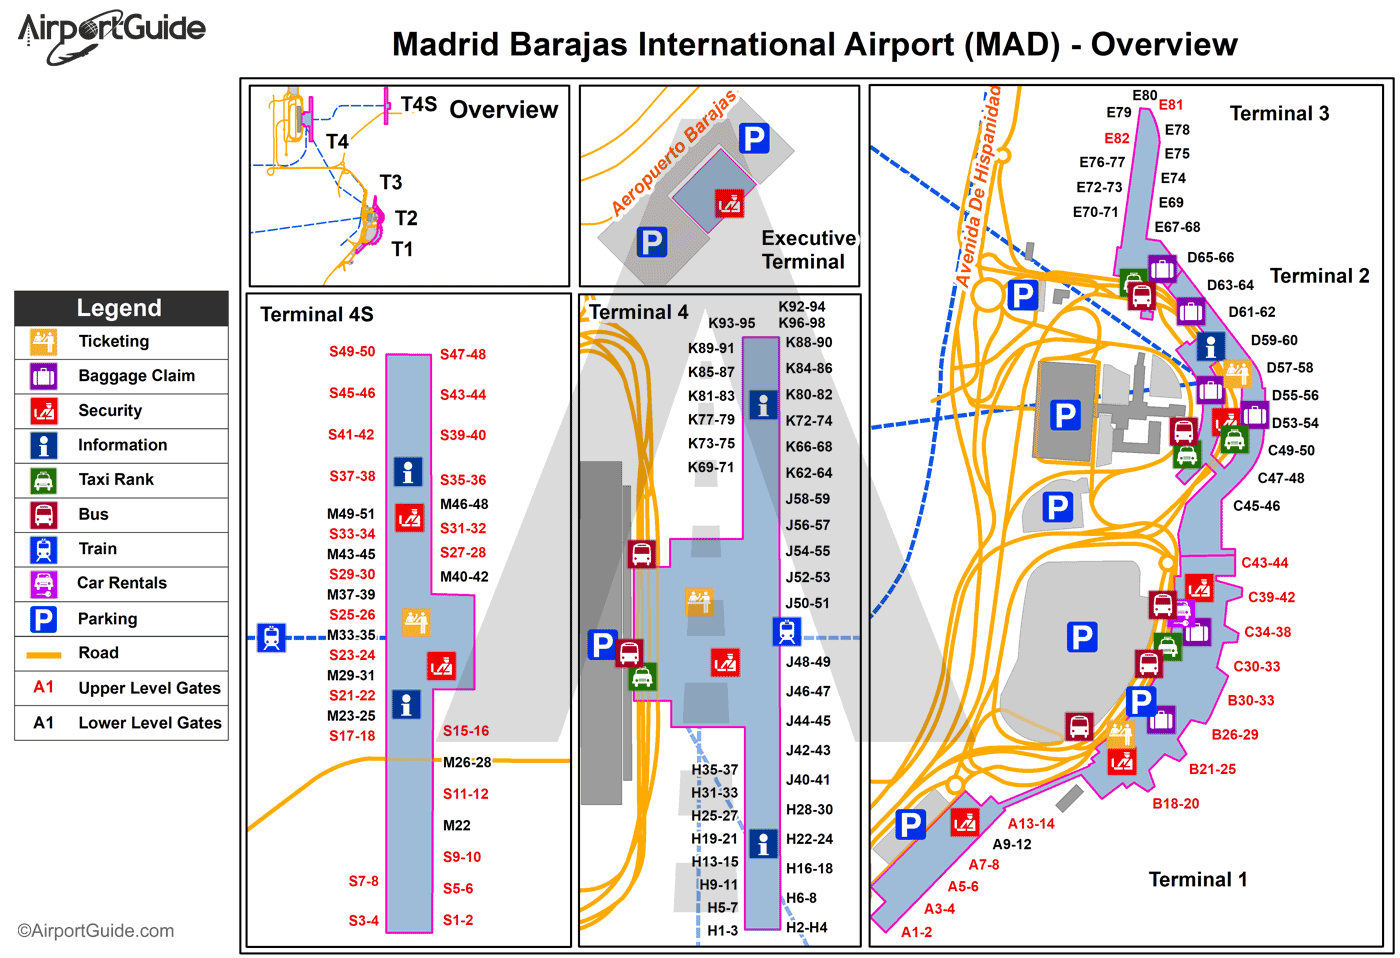 Barajas Airport Terminal Map Madrid   Madrid Barajas International (MAD) Airport Terminal Maps